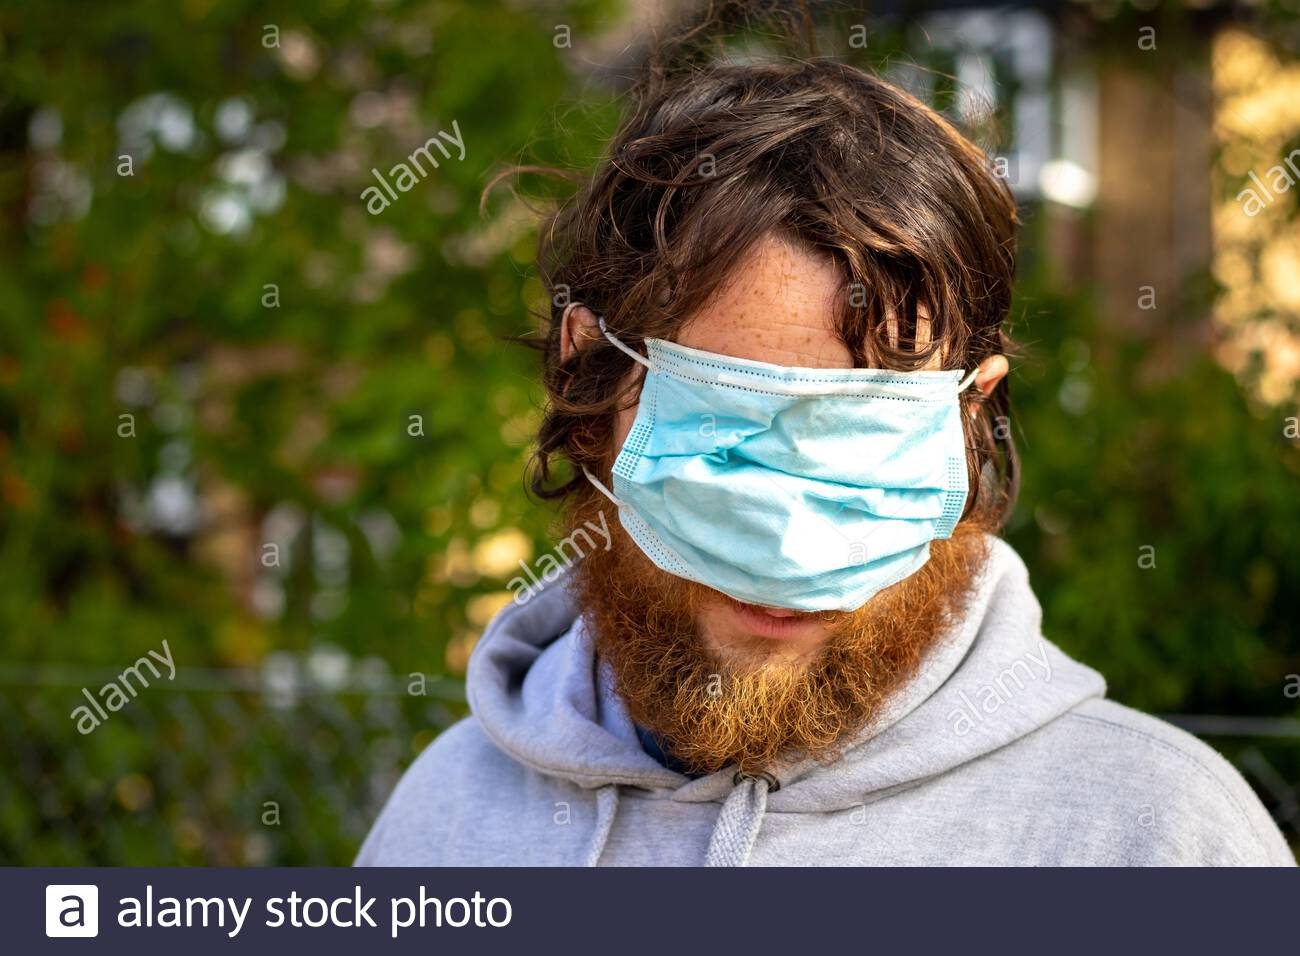 man-wearing-a-face-mask-over-his-eyes-and-nose-leaving-his-mouth-uncovered-2D4R17C.jpg